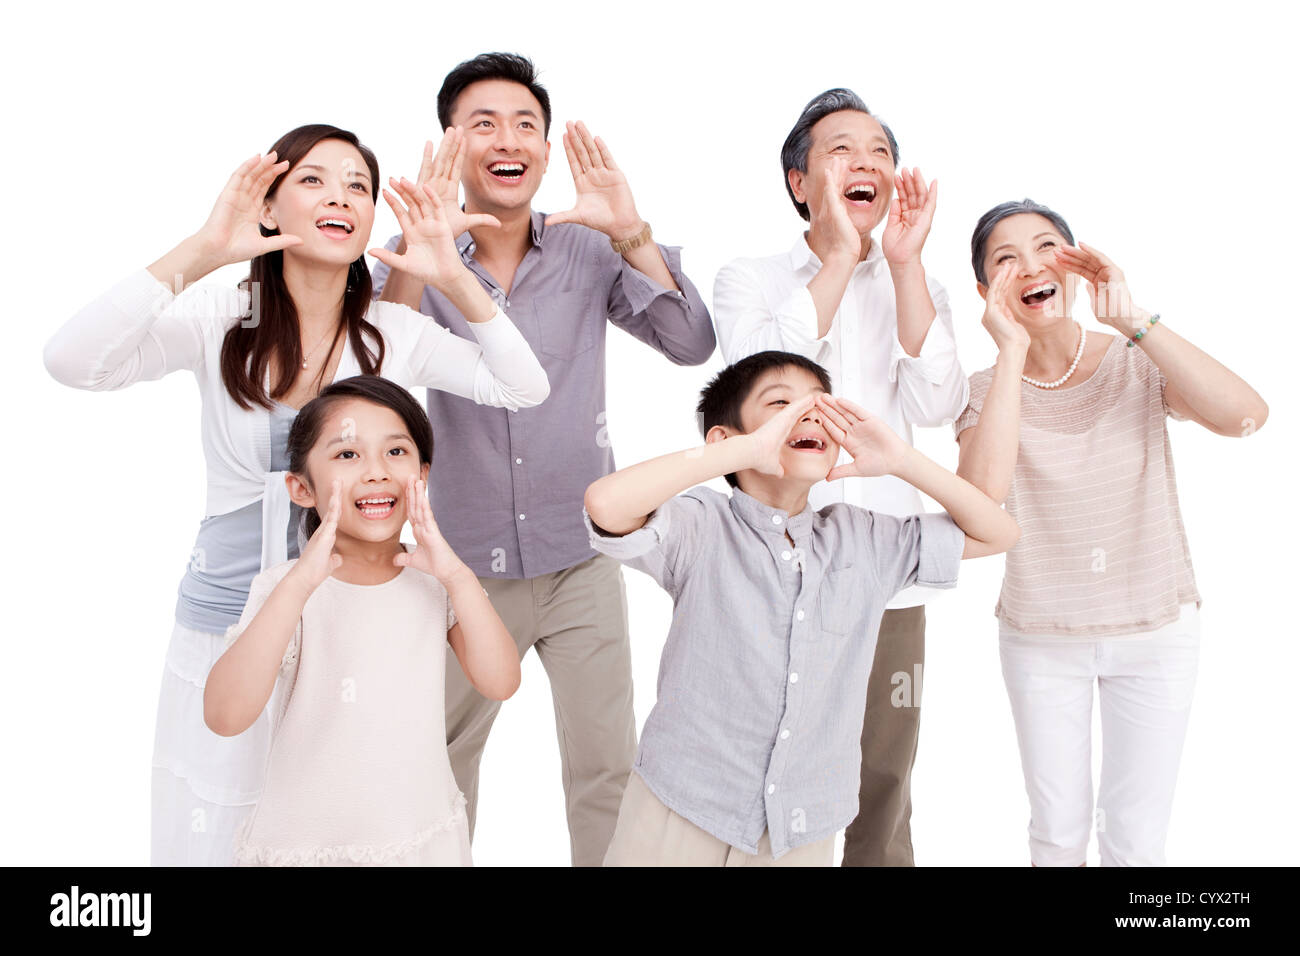 Family shouting loudly - Stock Image